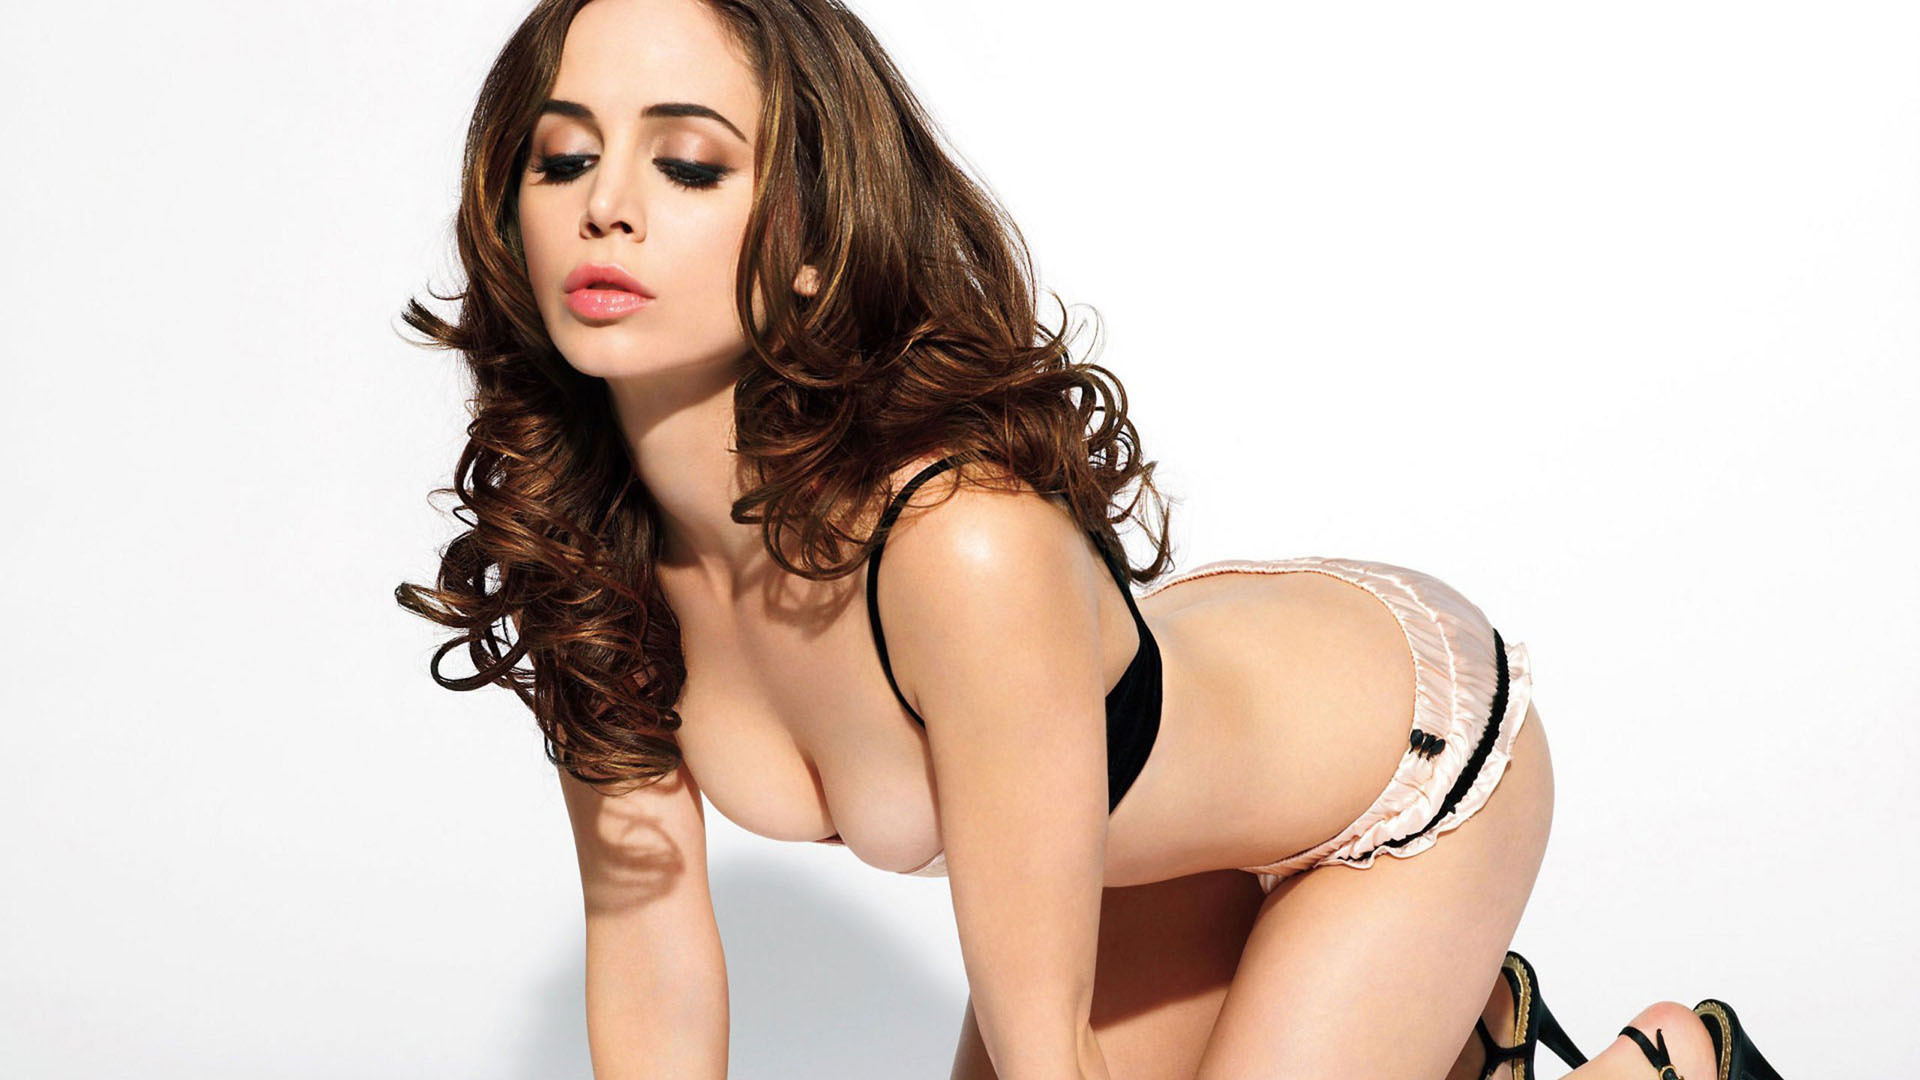 Eliza Dushku Wallpapers Images Photos Pictures Backgrounds